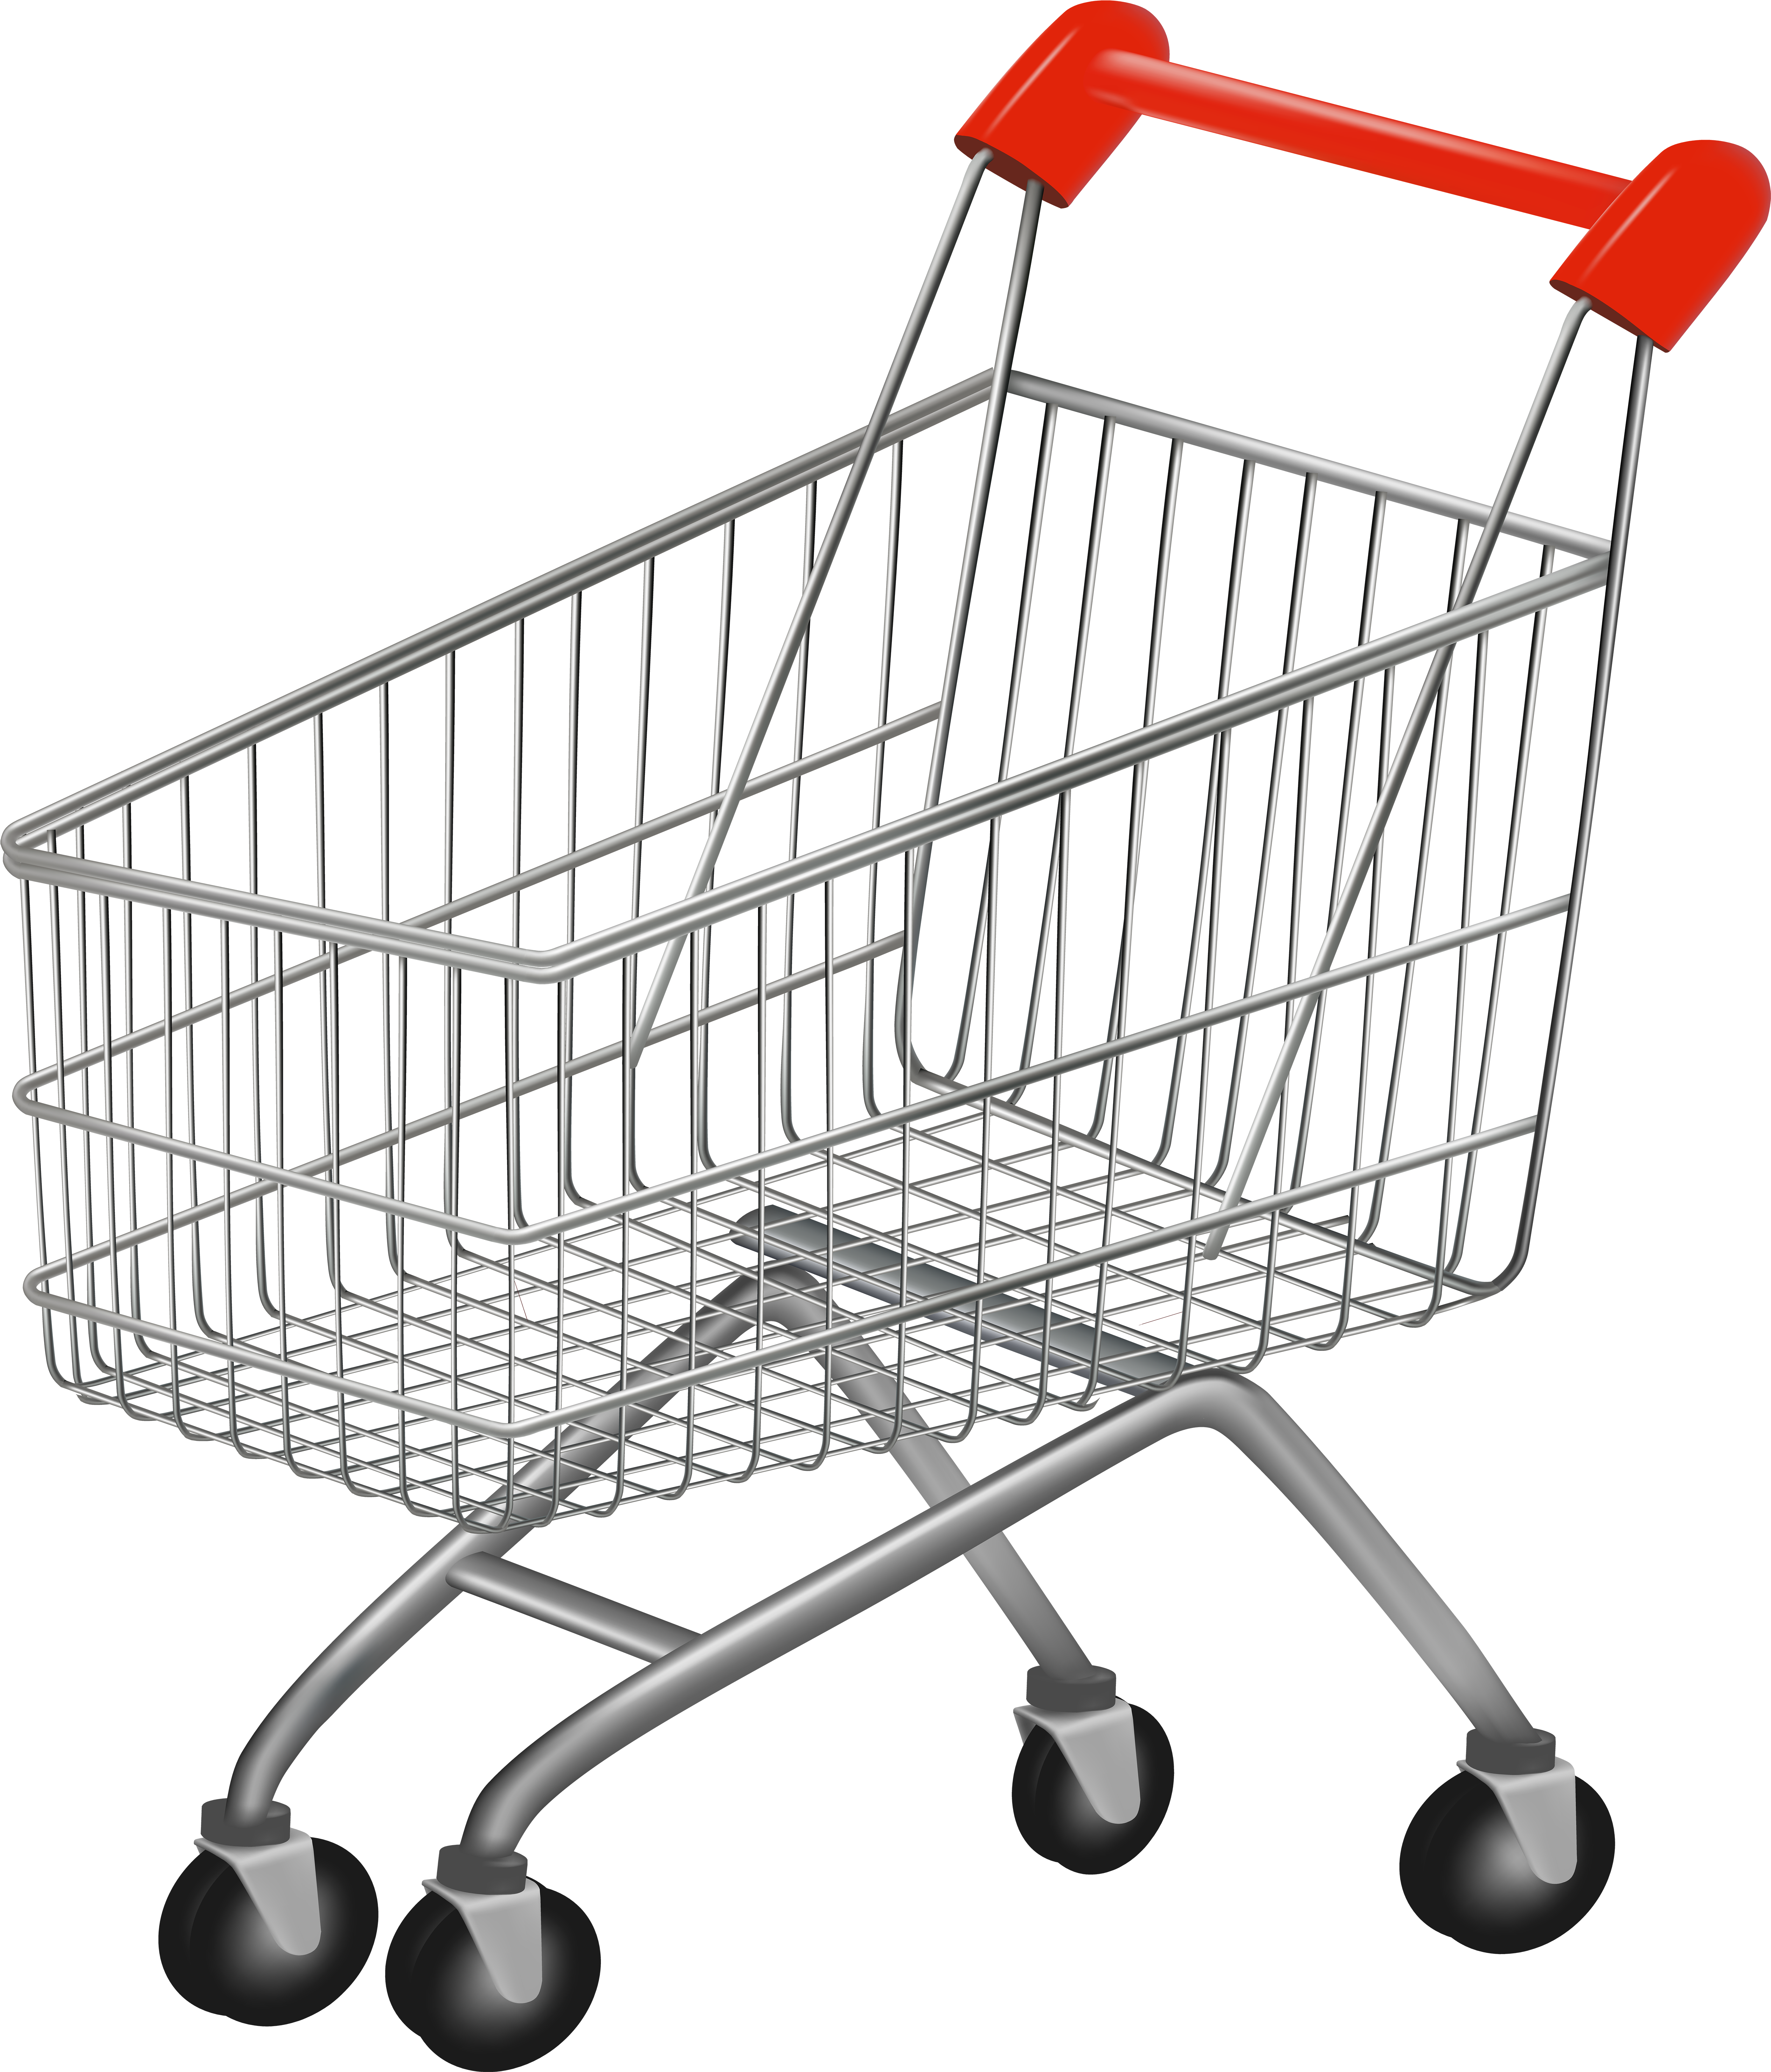 HD Shopping Cart Image Png - Transparent Shopping Cart Clipart ... vector download